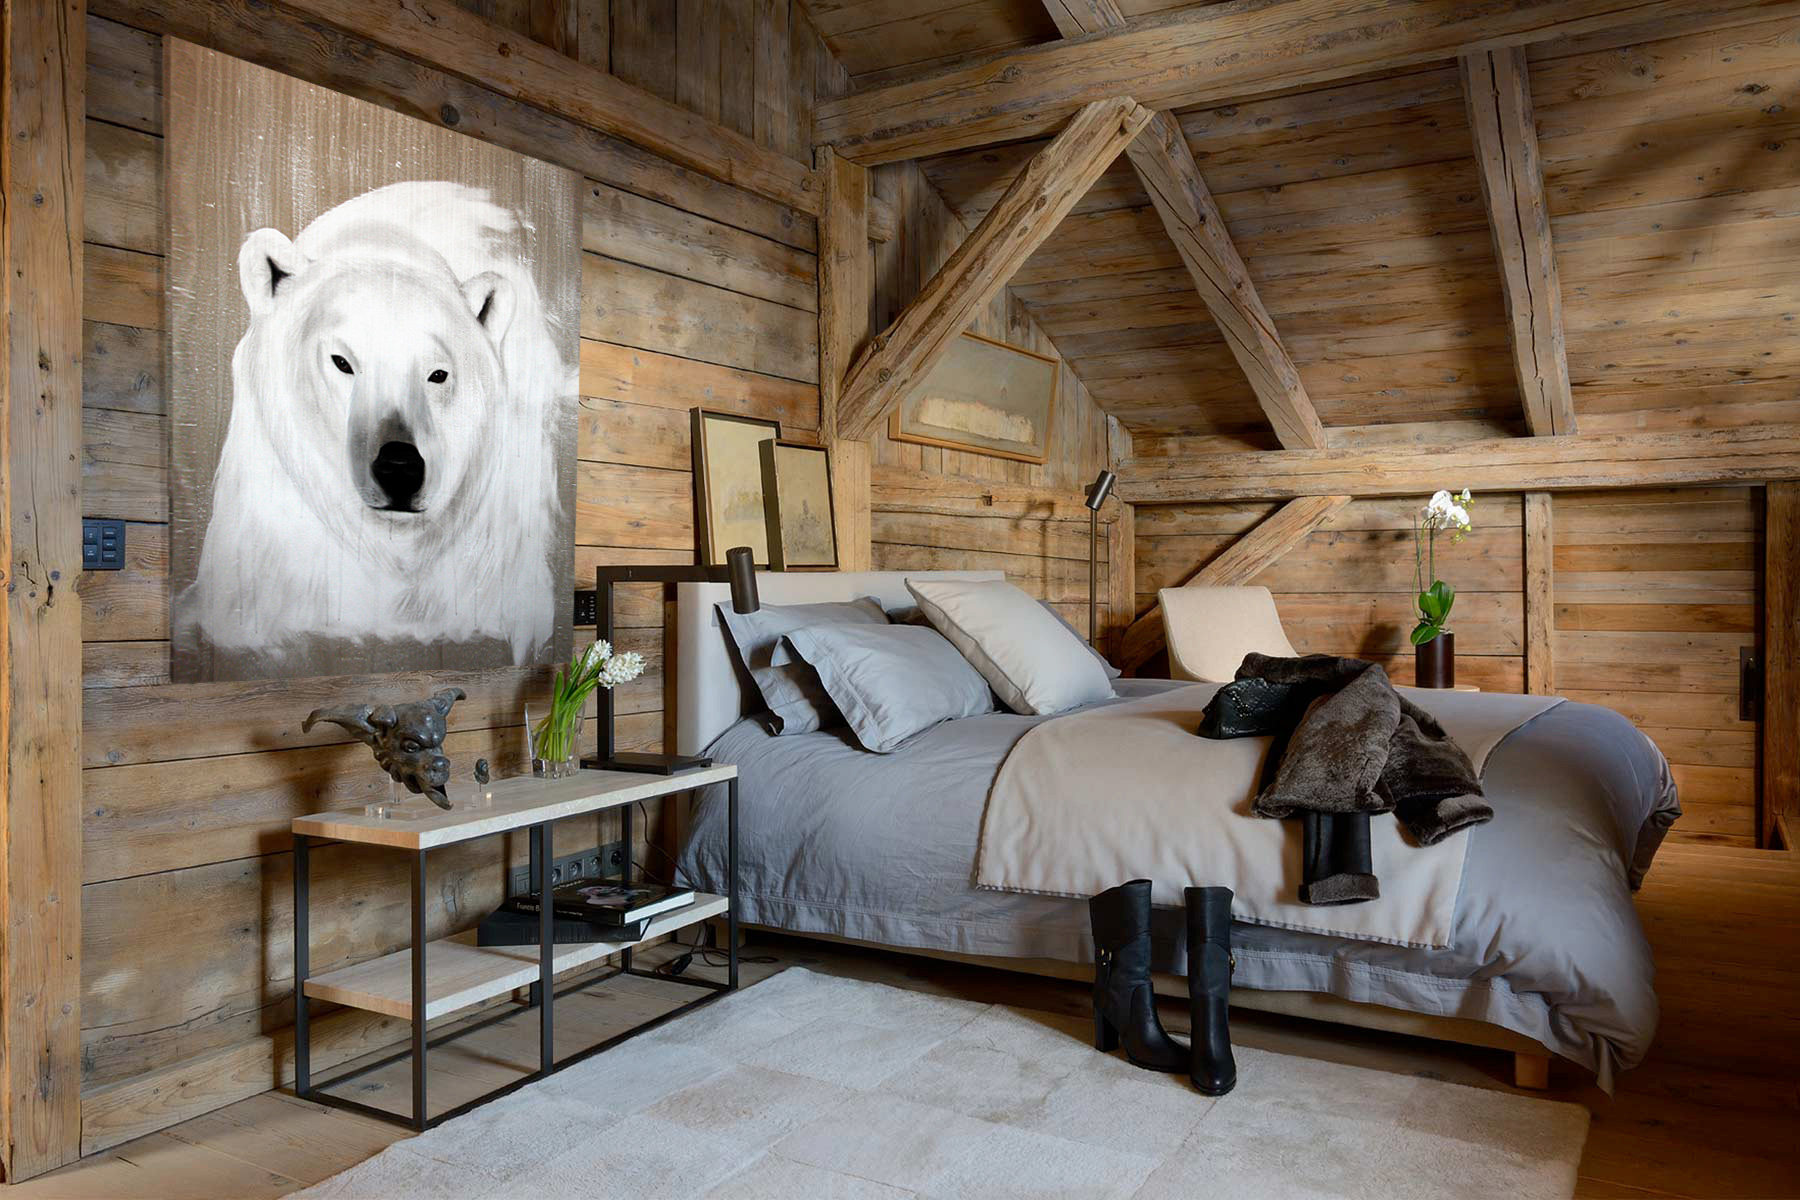 POLAR-BEAR---5 polar-bear Thierry Bisch painter animals painting art decoration hotel design interior luxury nature biodiversity conservation